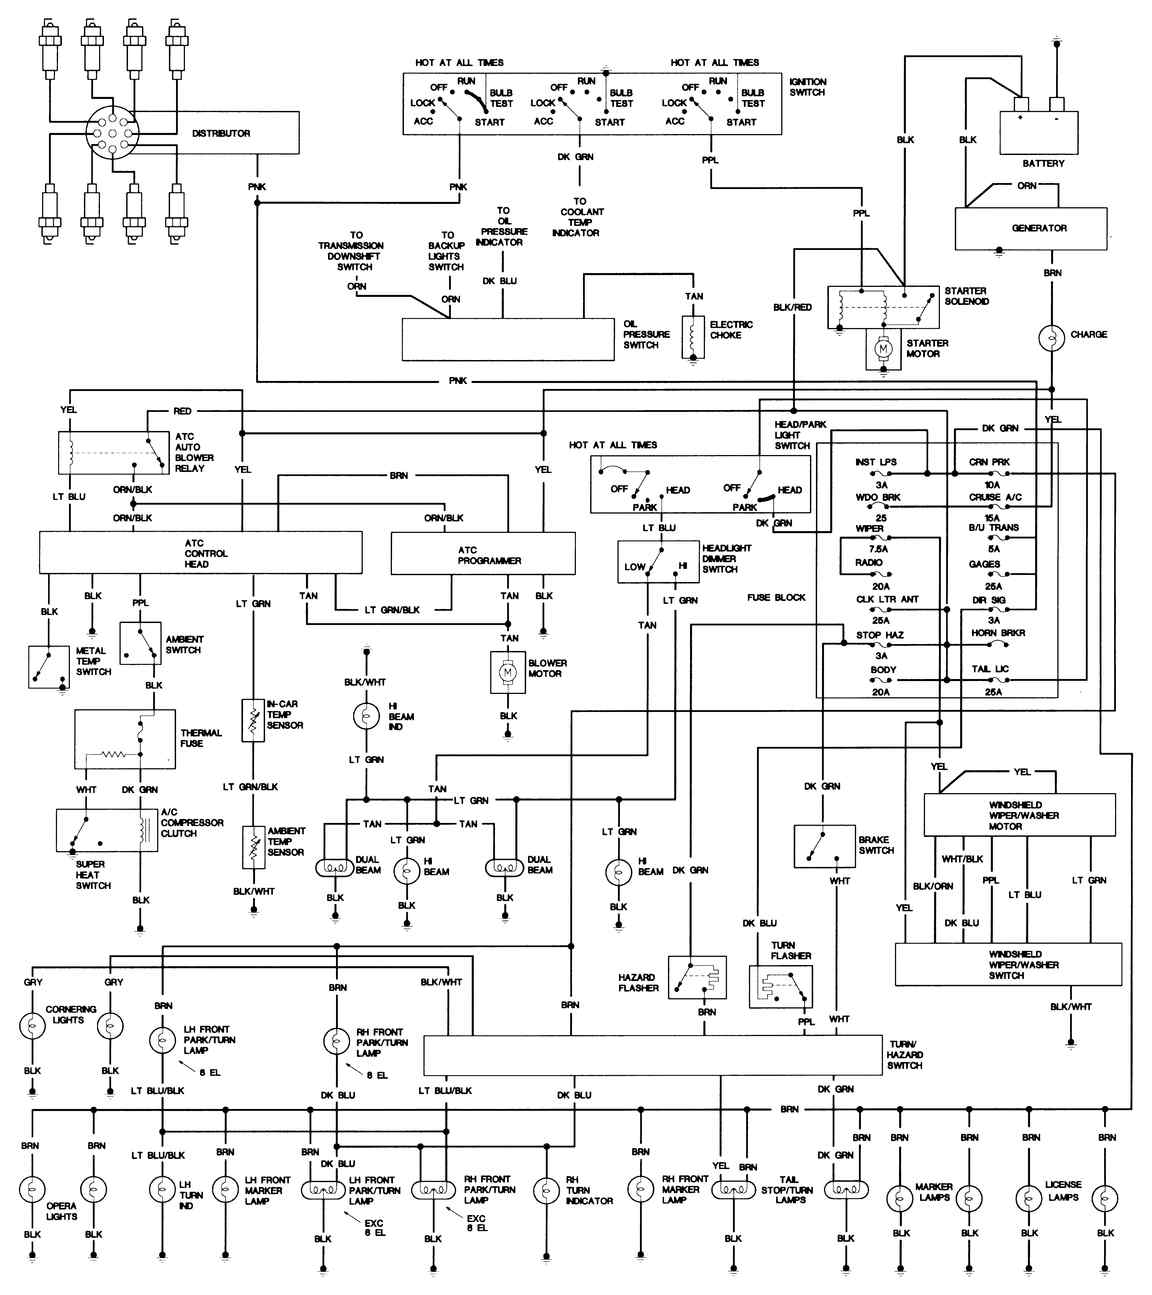 diagram] cadillac eldorado wiring harness diagram full version hd quality  harness diagram - neescoschematic4206.fisiobenesseresegrate.it  fisiobenesseresegrate.it